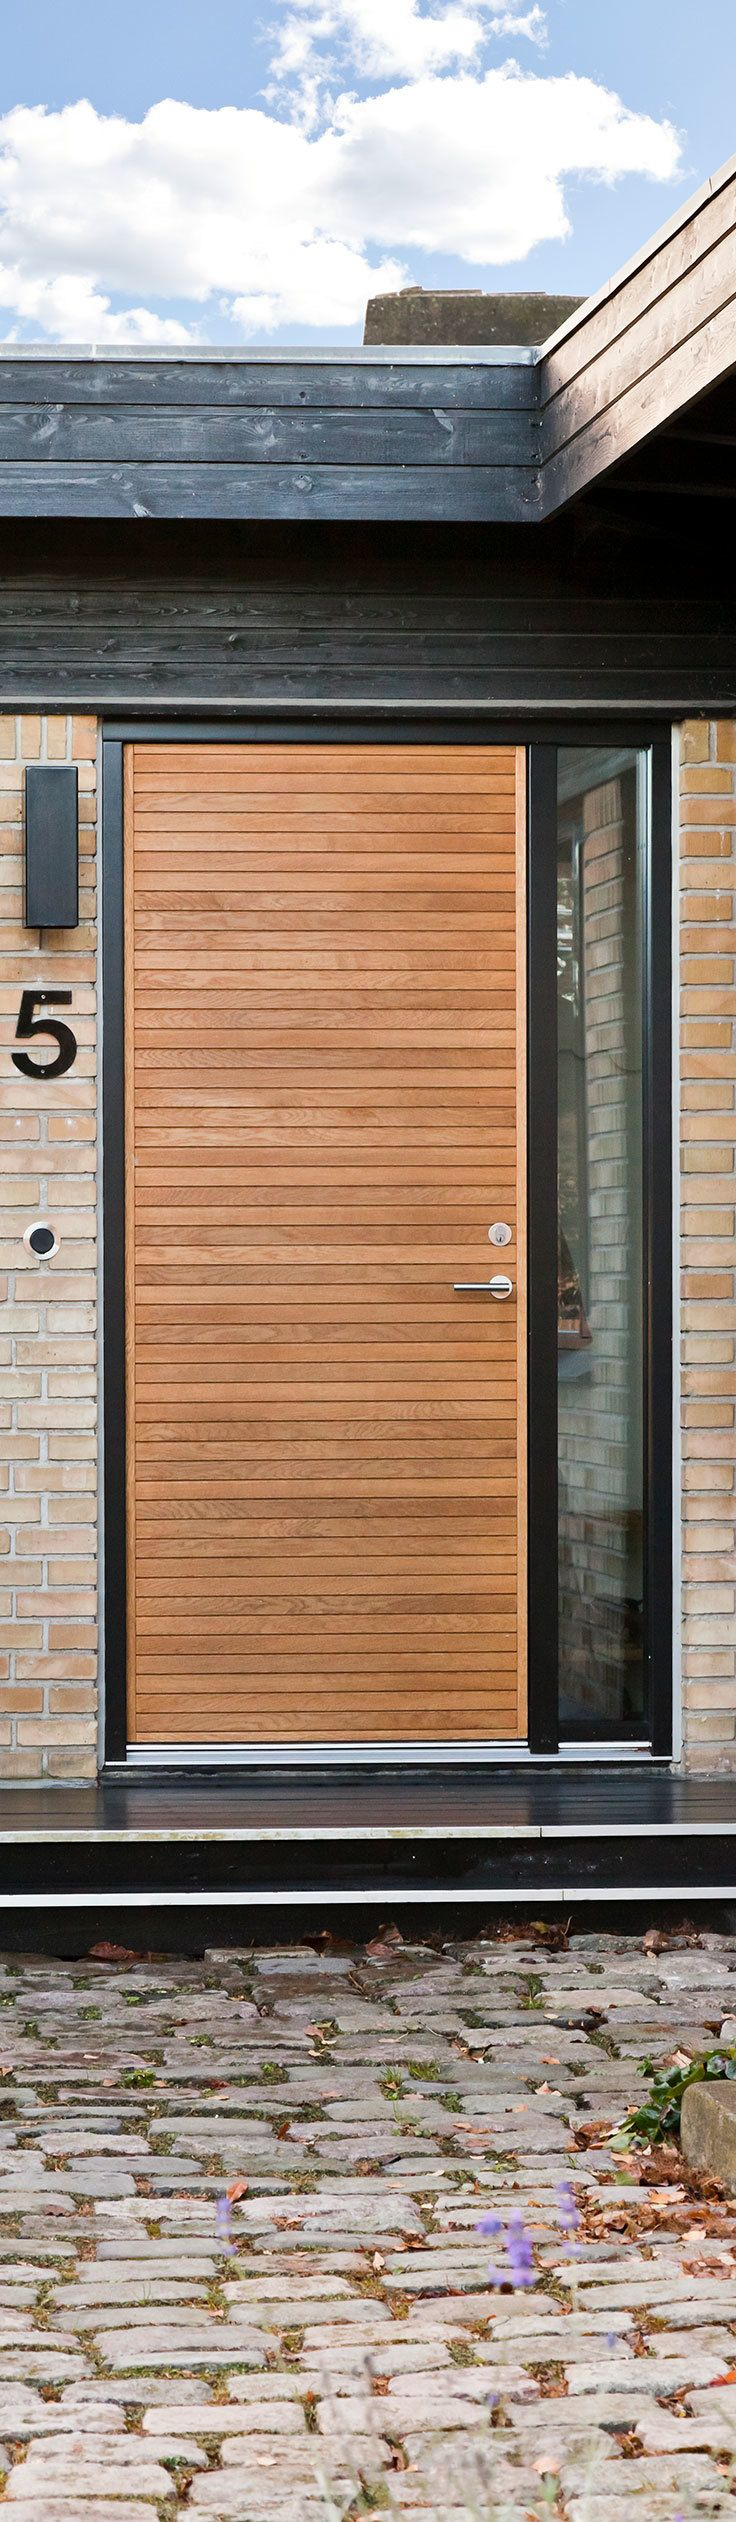 Architectural exterior door model Aros in light oak from JE-Trae - produced by Vahle Door in Denmark.